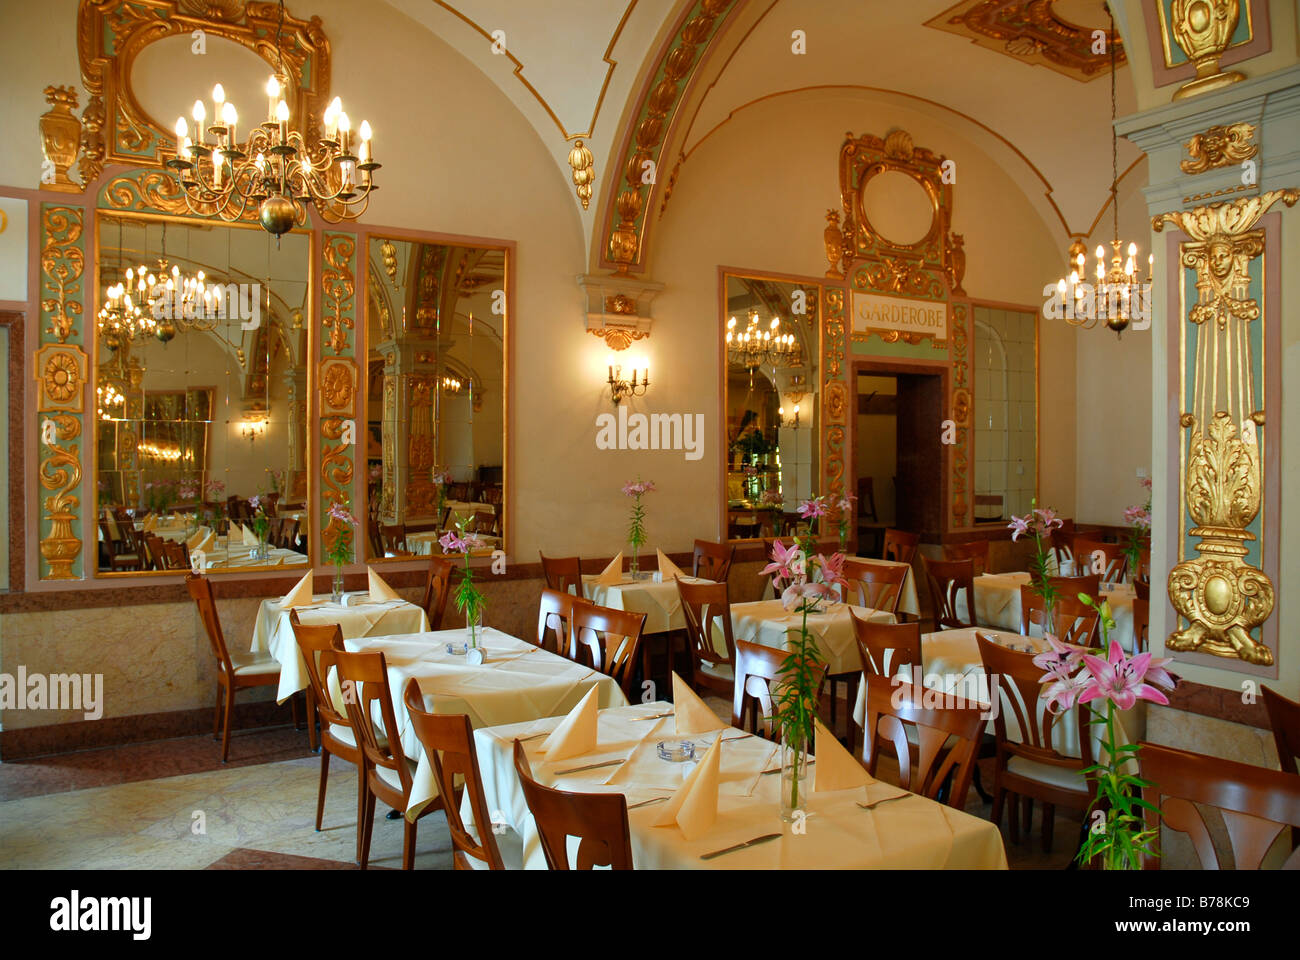 Keller Restaurant café bistro Orlando, interior decoration, gold and ...